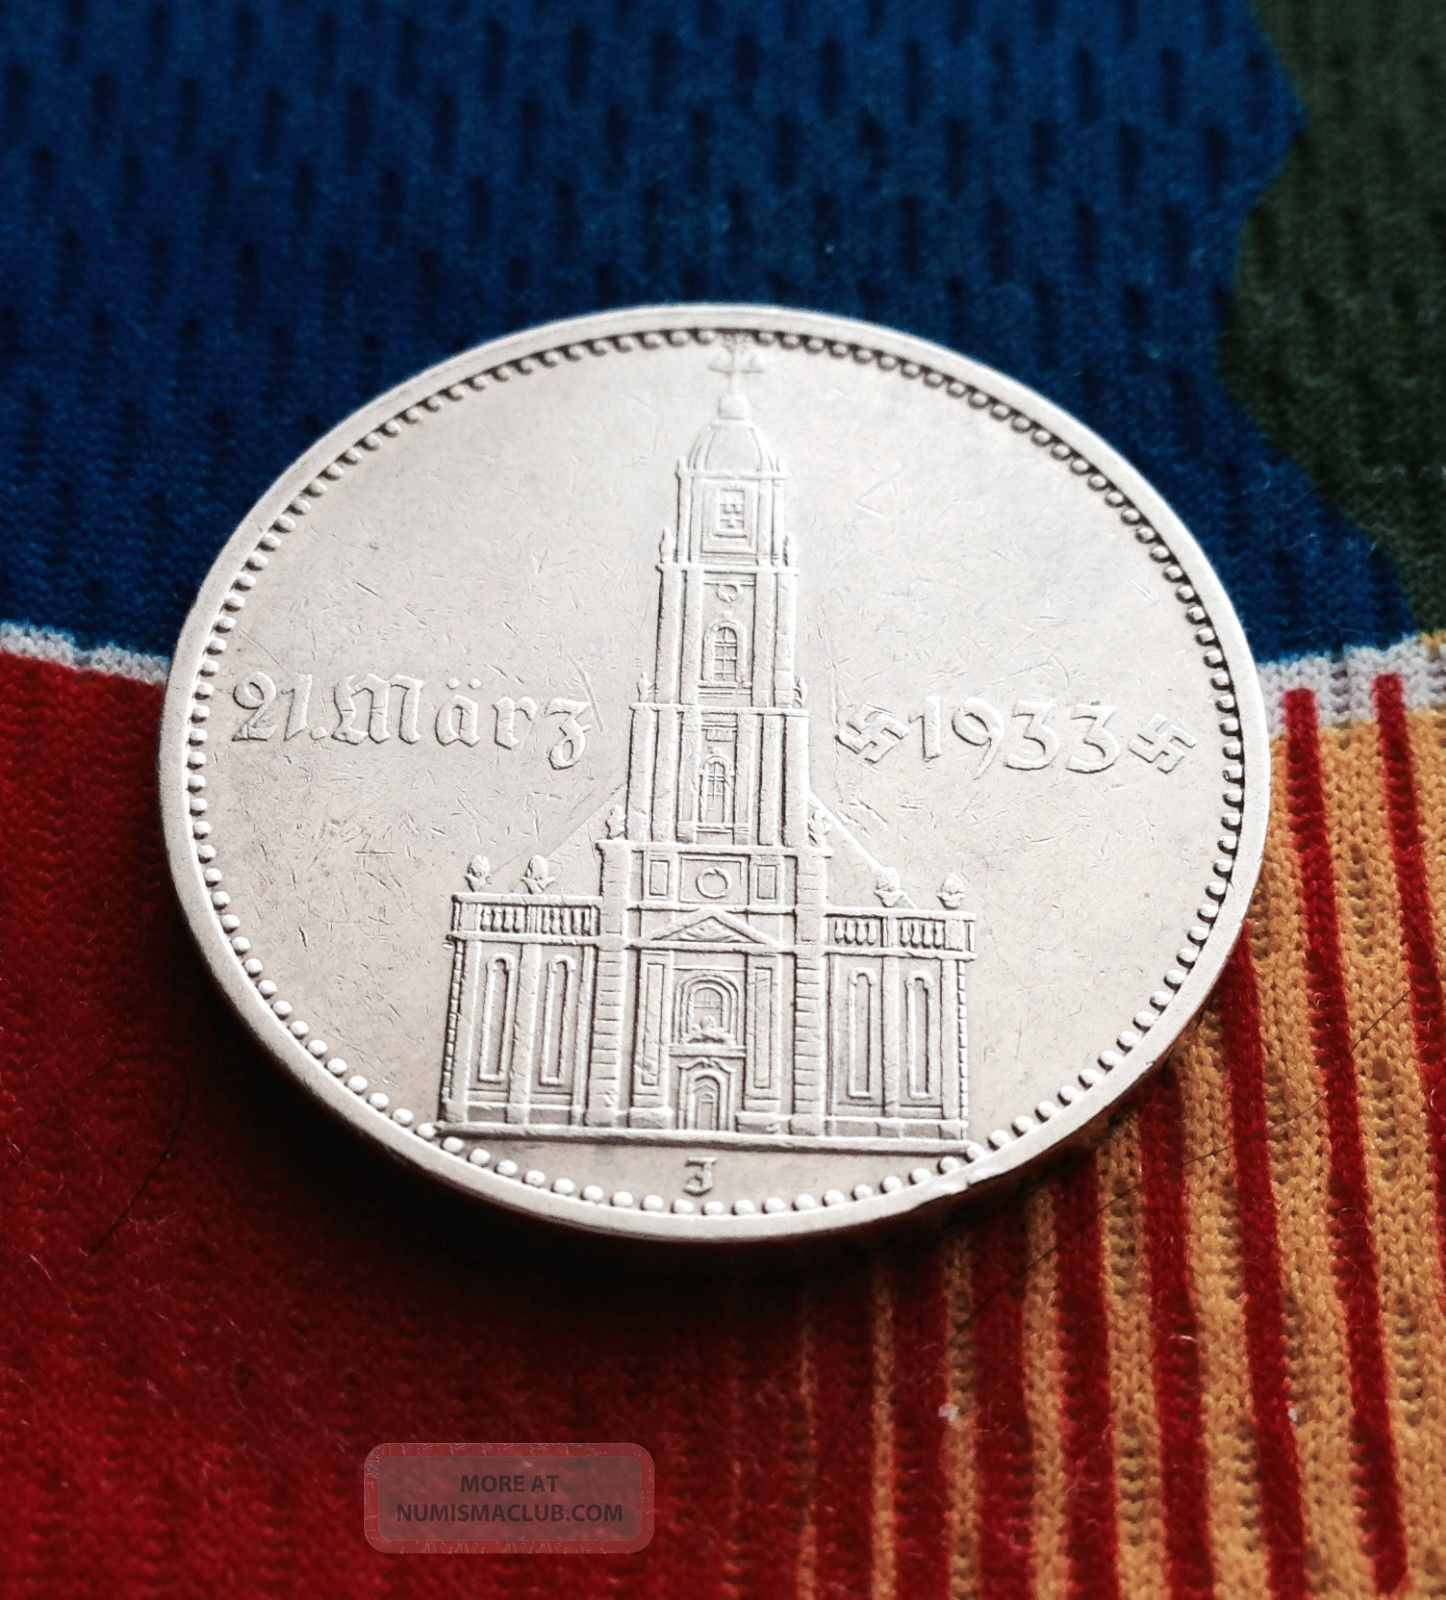 327,  000 Minted 1934 J Ww2 5 Mark 90% Silver German Garrisonkirche 3rd Reich Coin Germany photo